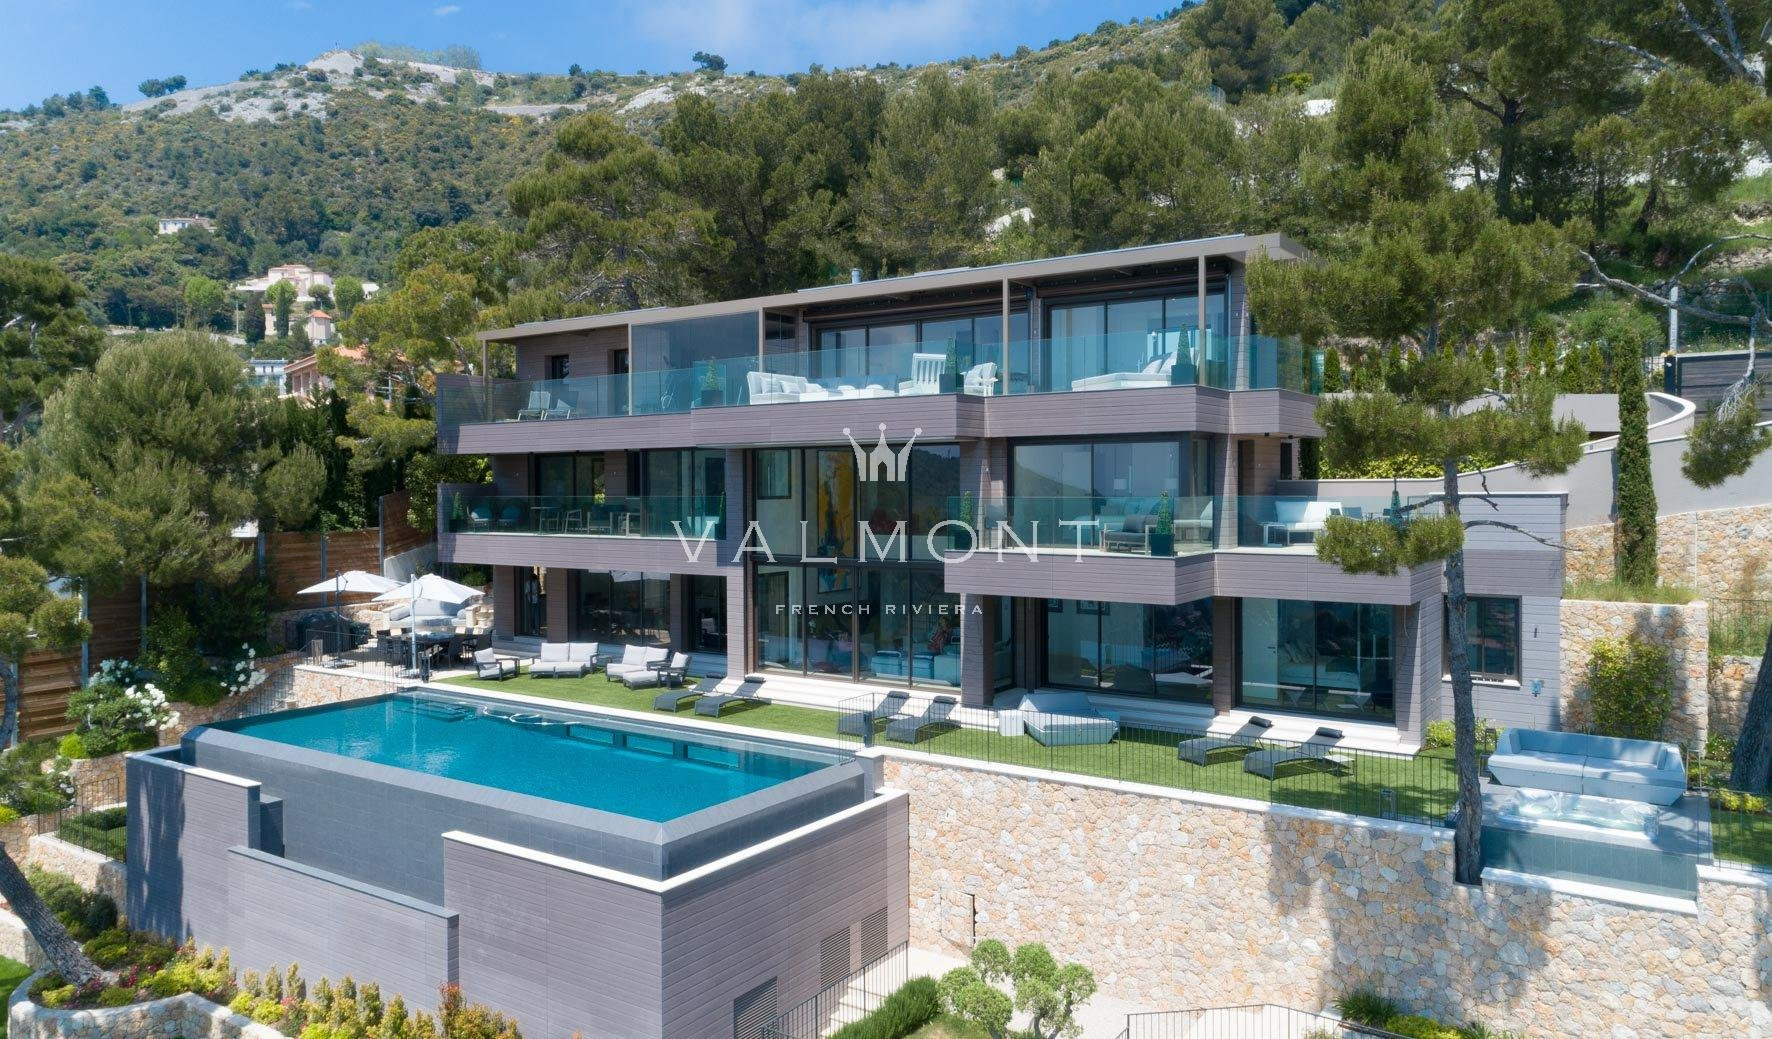 VILLA CONTEMPORAINE D'EXCEPTION A PROXIMITE DE MONACO